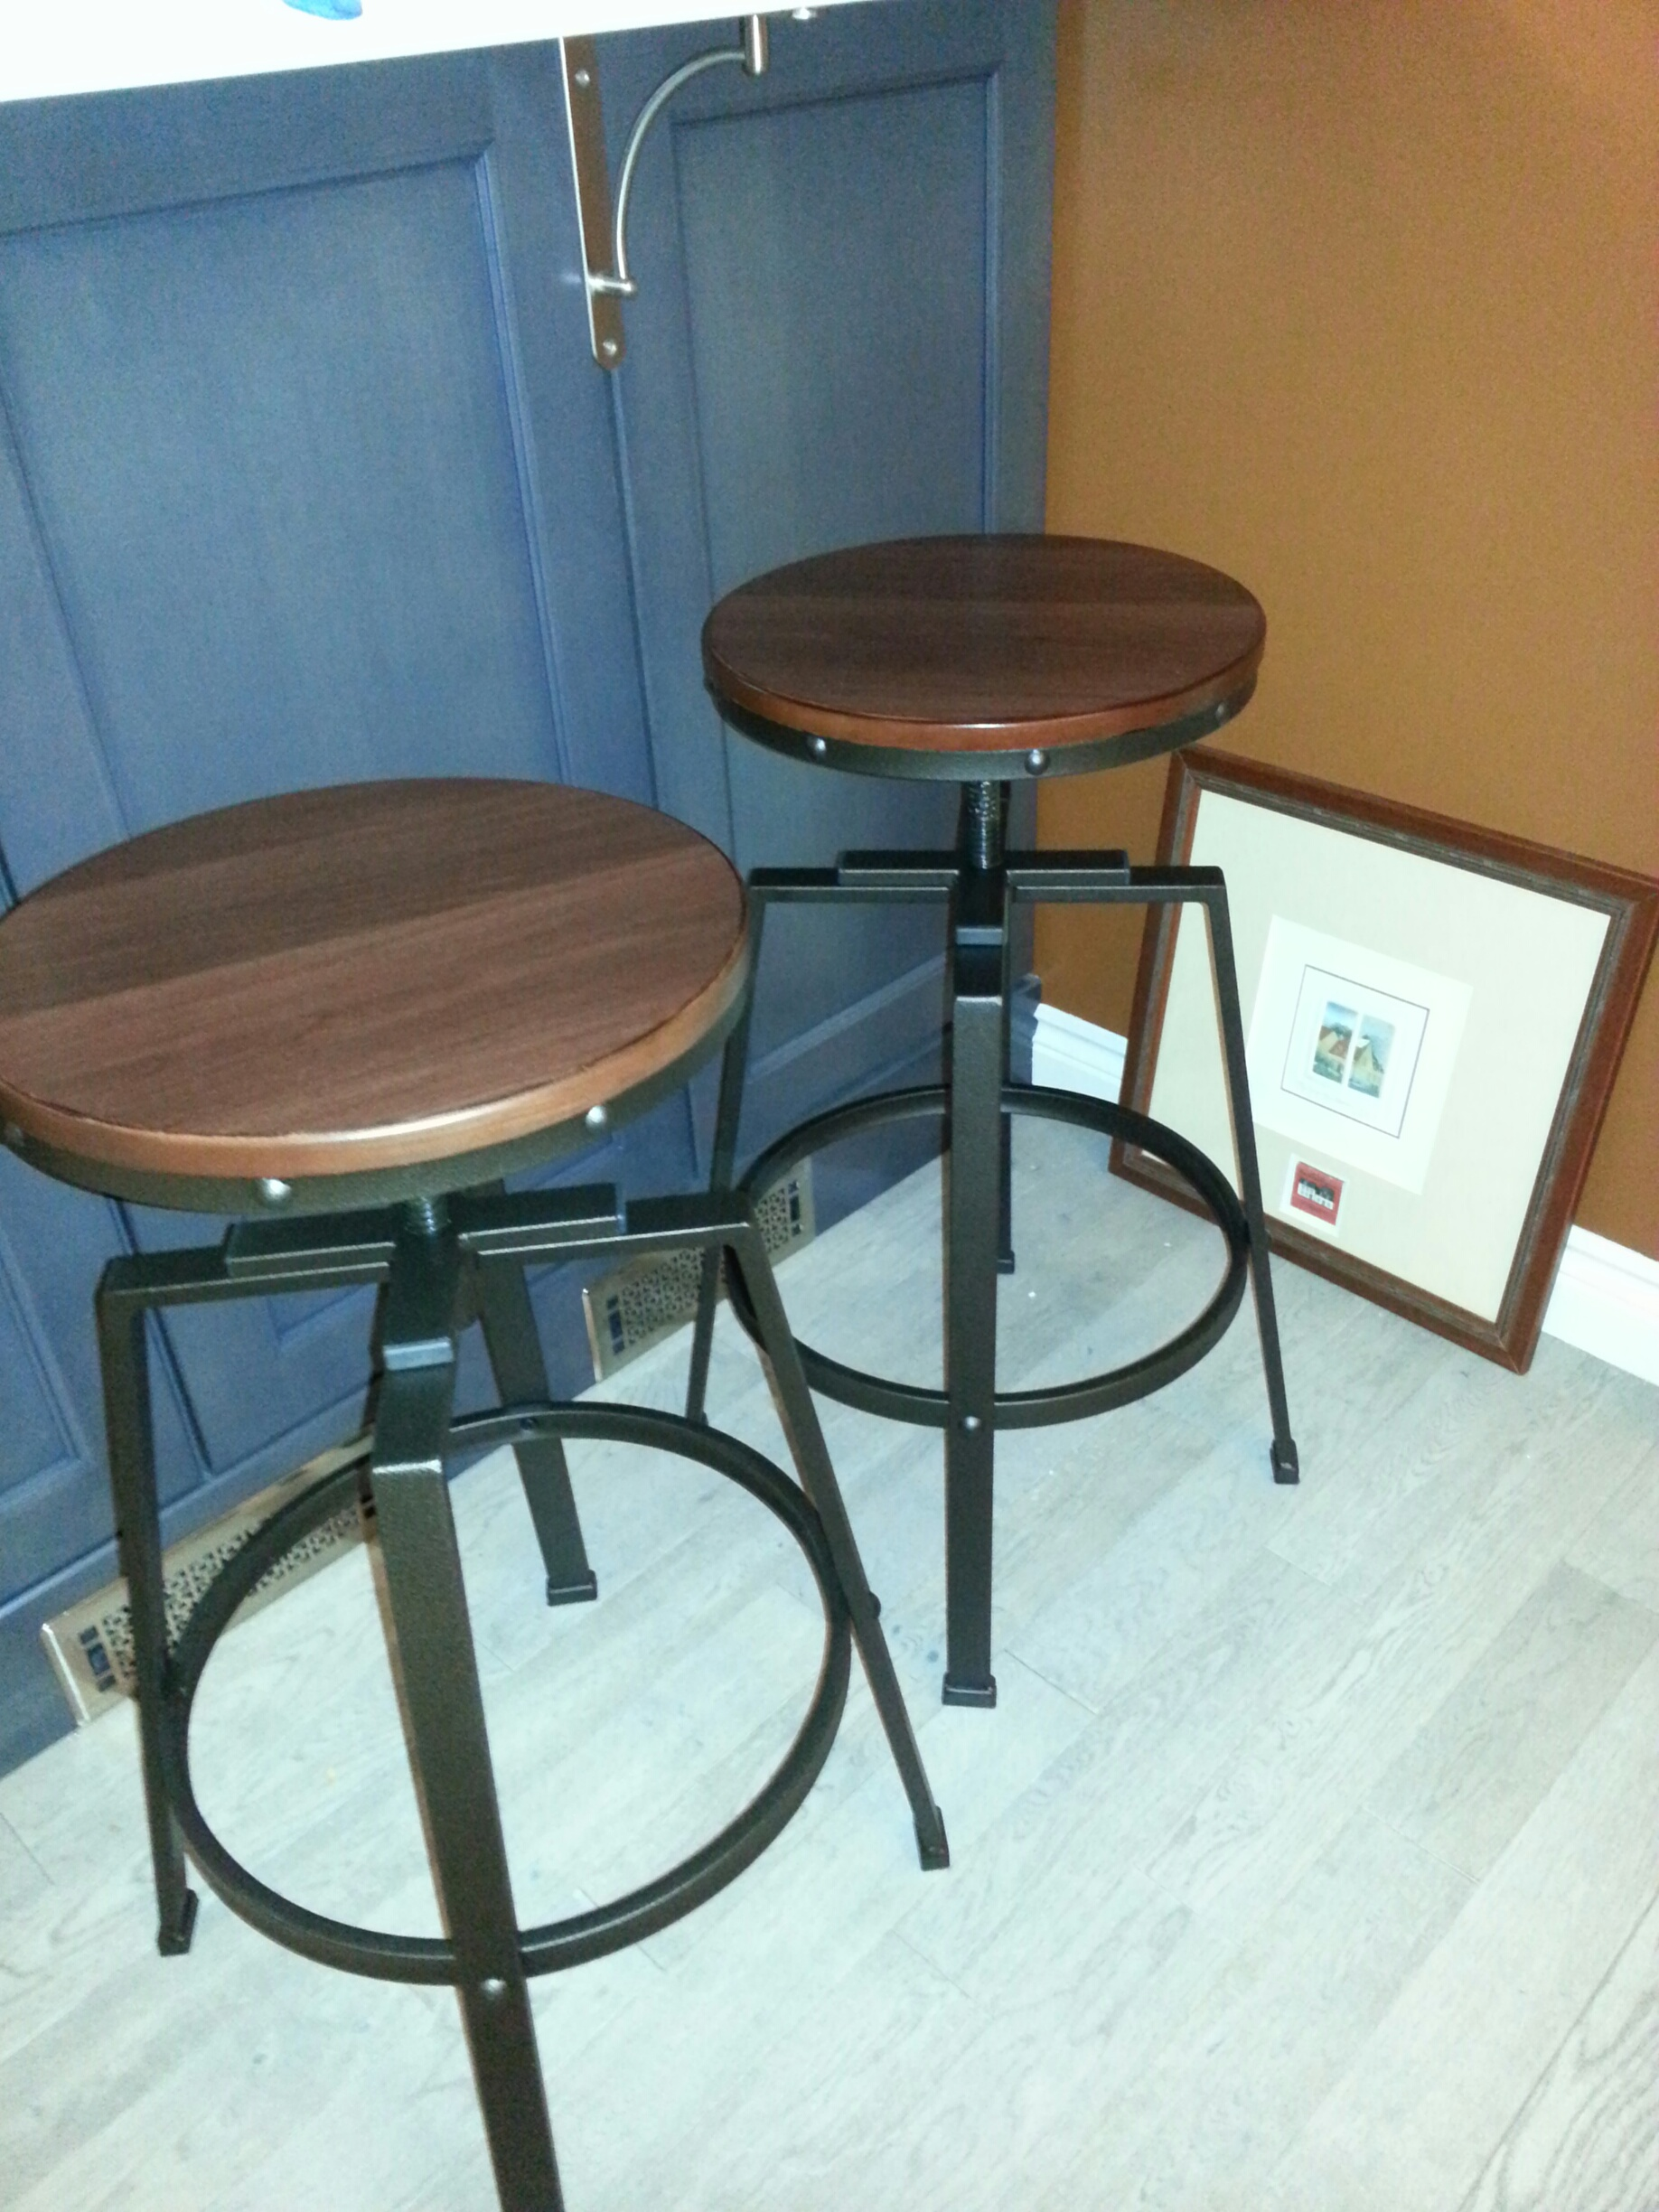 industrial chairs target stressless chair reviews canada progress report week 11  details my mid life reno